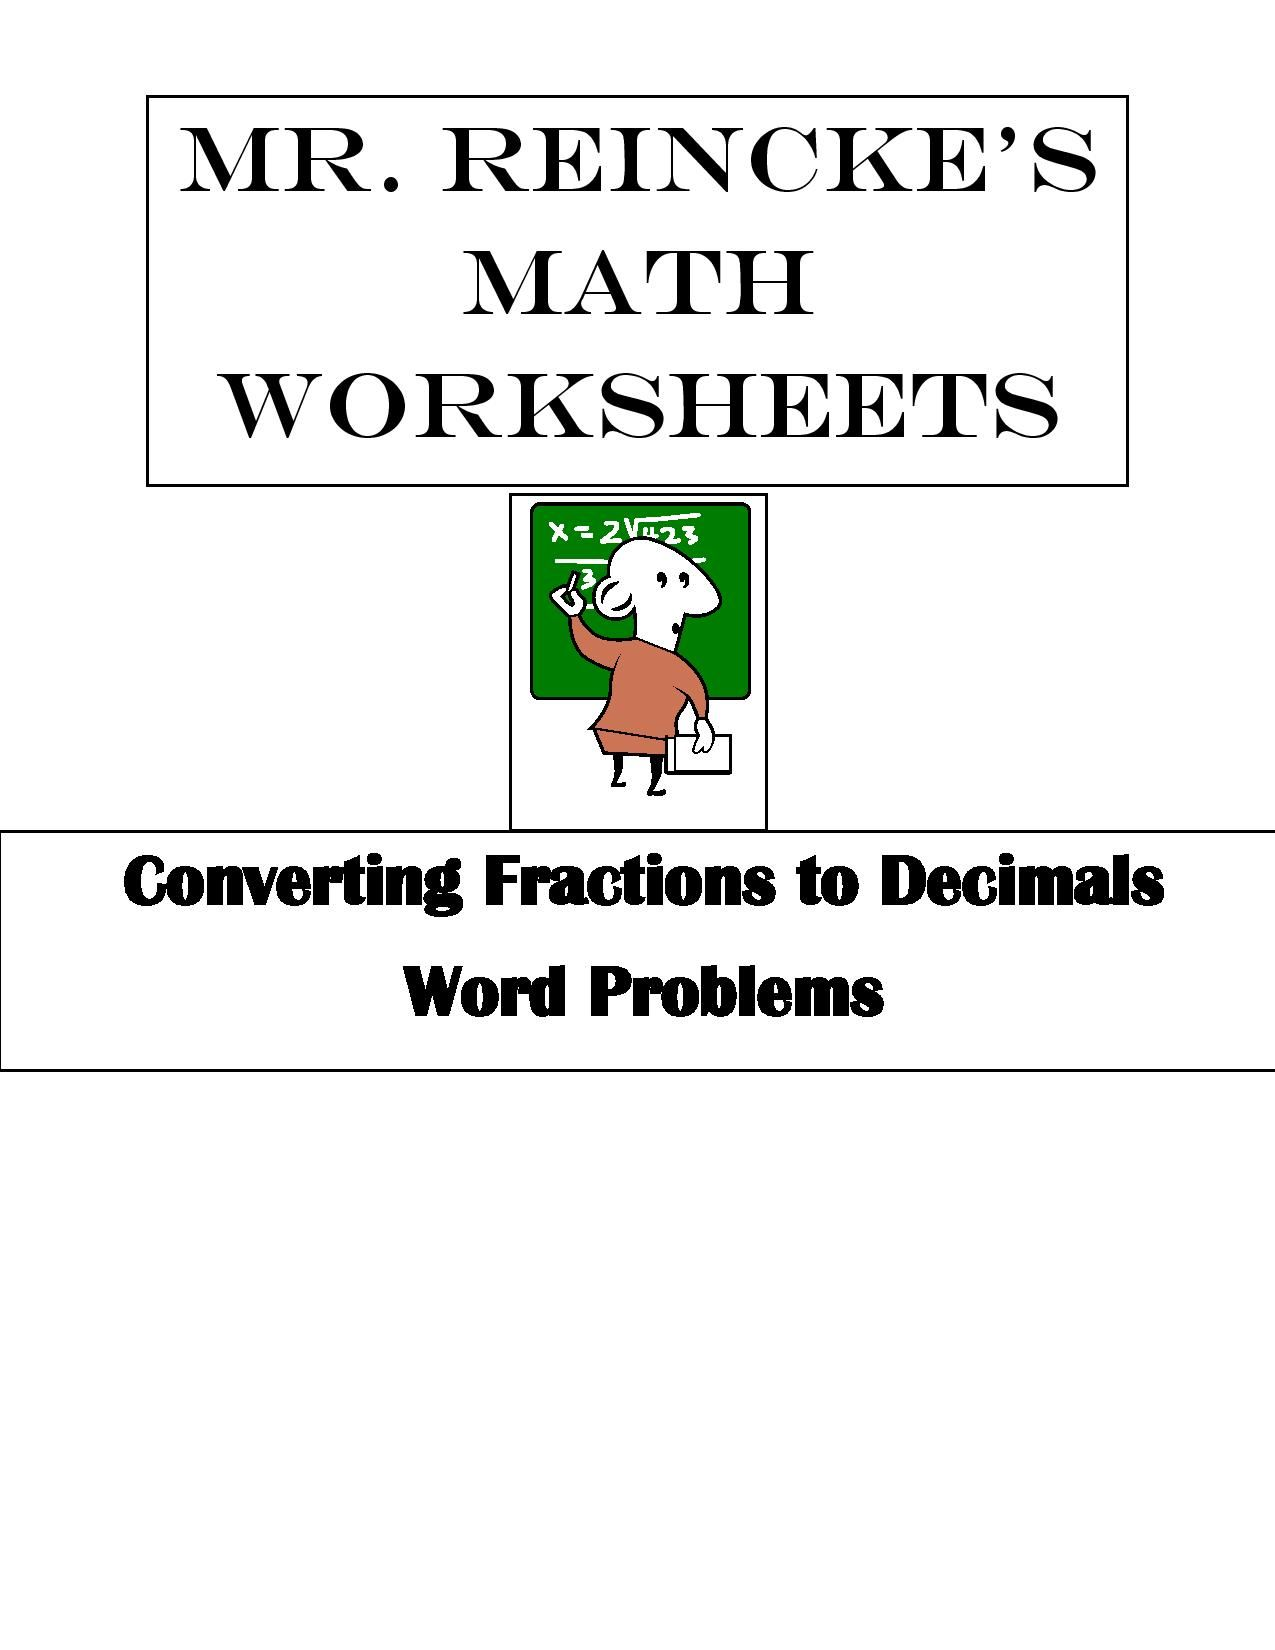 10 Adding Mixed Numbers Worksheet Fauniindicia